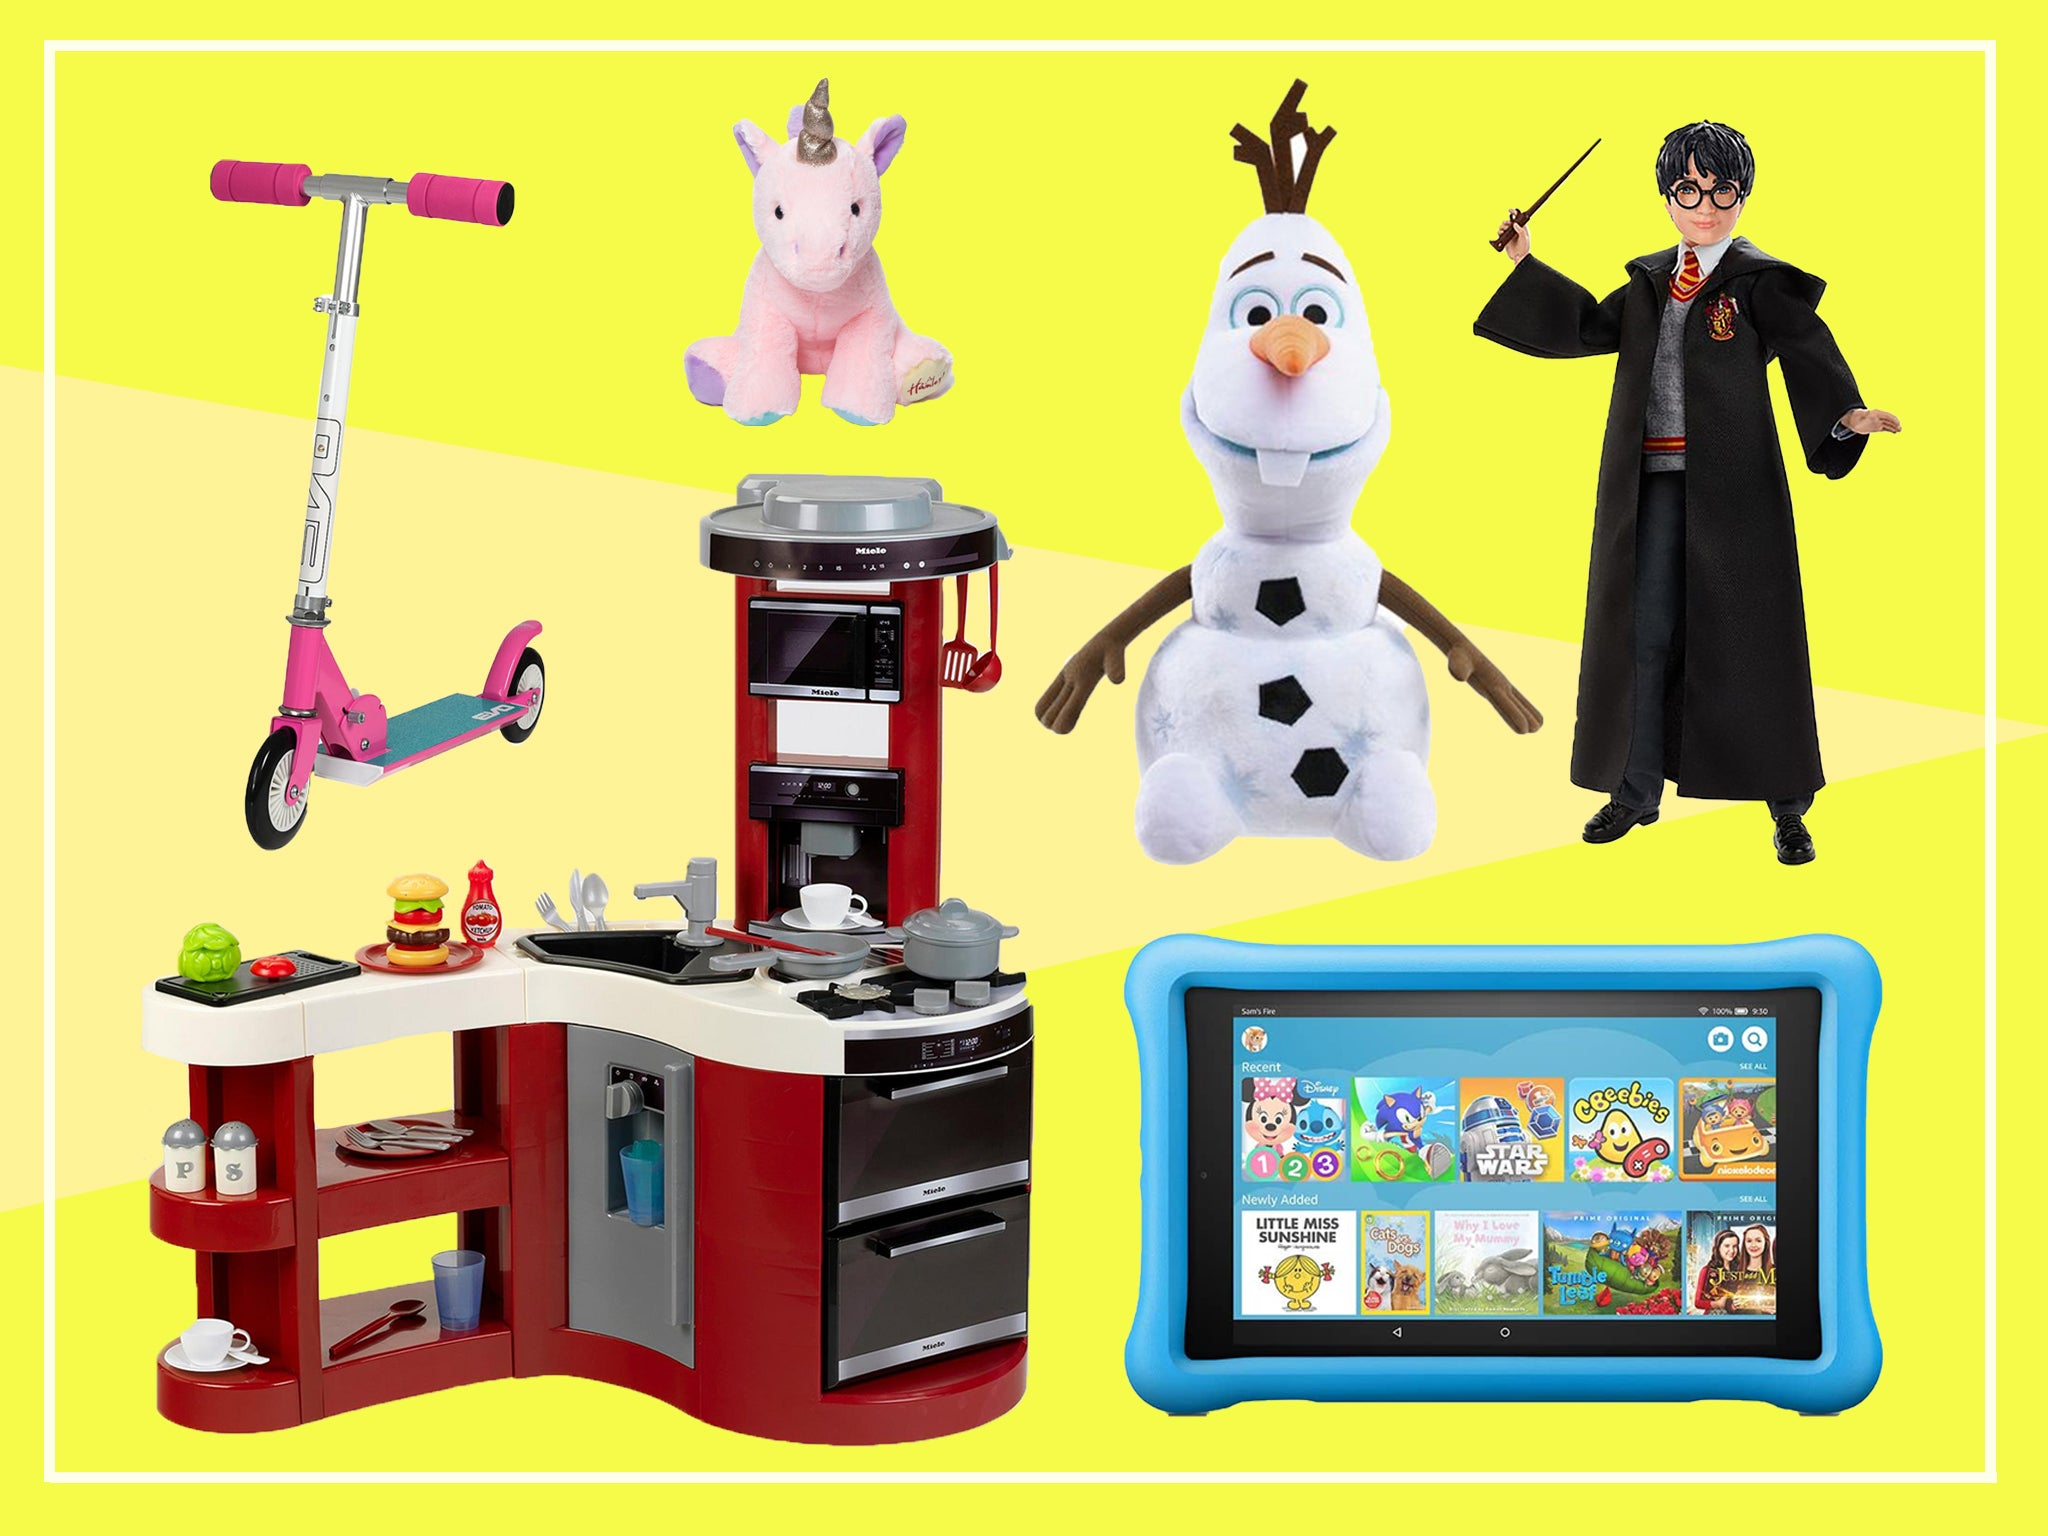 Best Black Friday Toy Deals 2020 From Lego Fortnite Frozen And More Old 4.8 out of 5 stars 1 lego dc mobile bat base 76160 batman building toy, gotham city batcave playset and action minifigures, great 'build your. great britain news